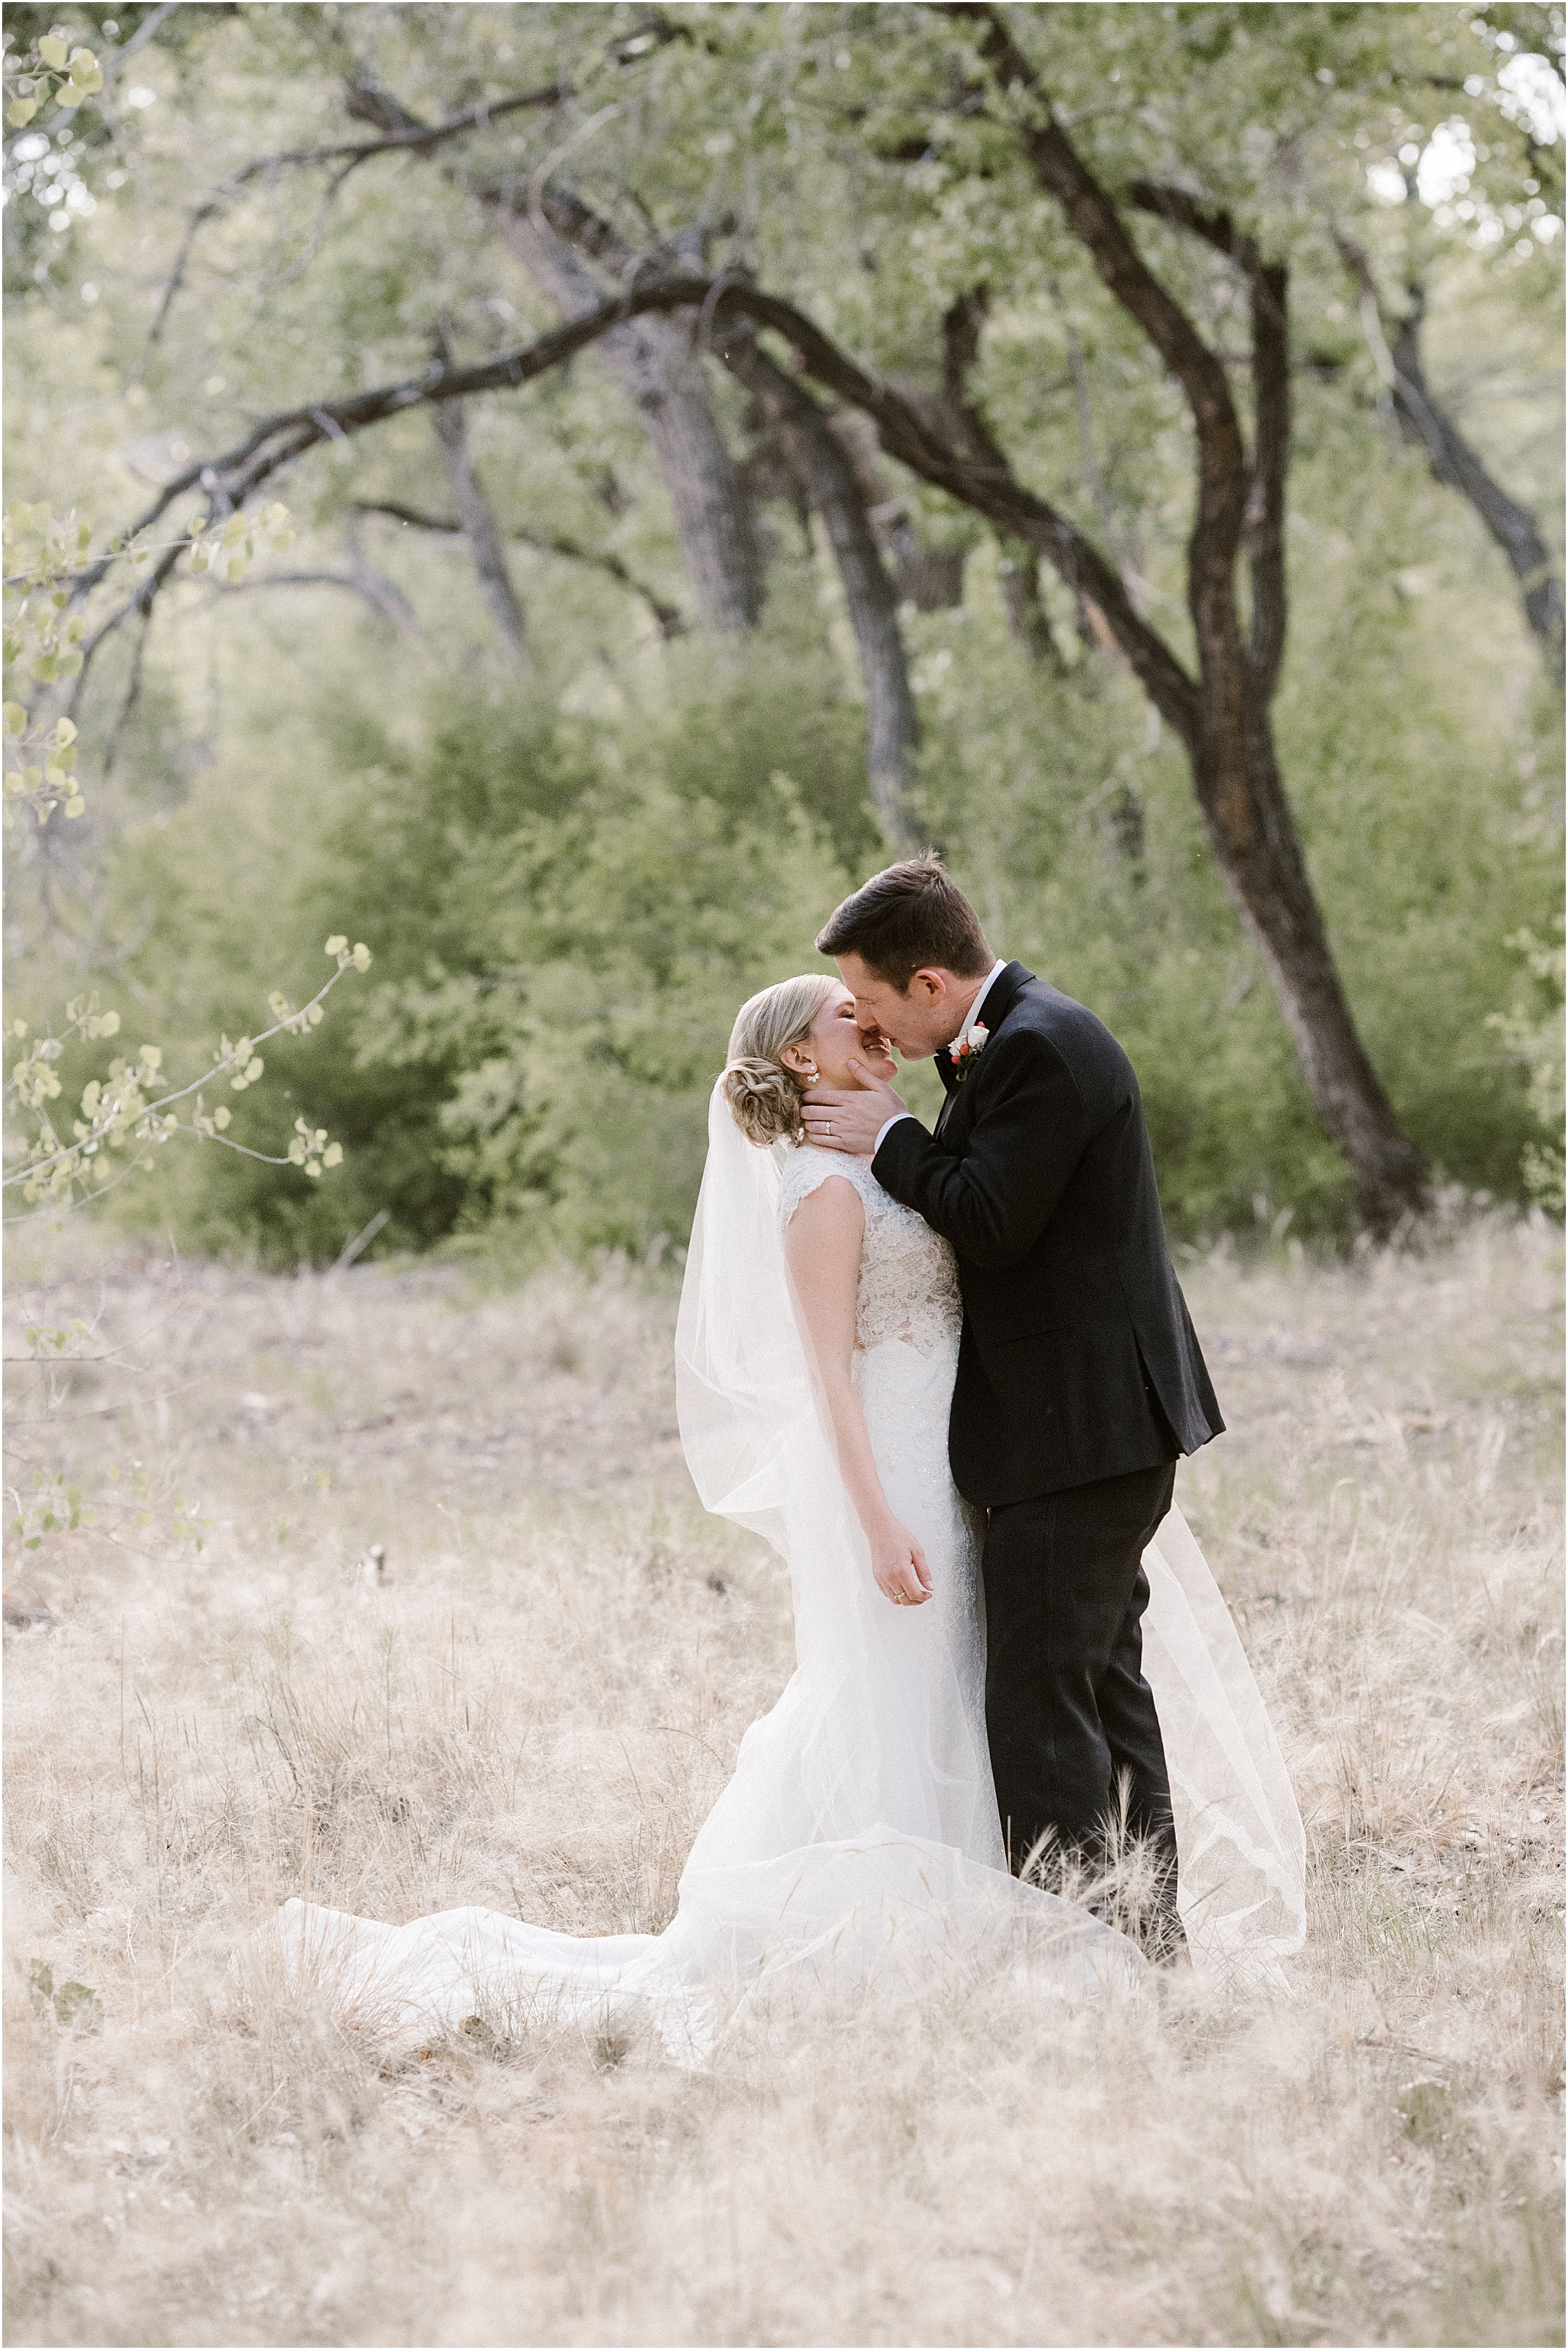 JENNA_JEROME_BLUE ROSE PHOTOGRAPHY_ABQ WEDDING_36